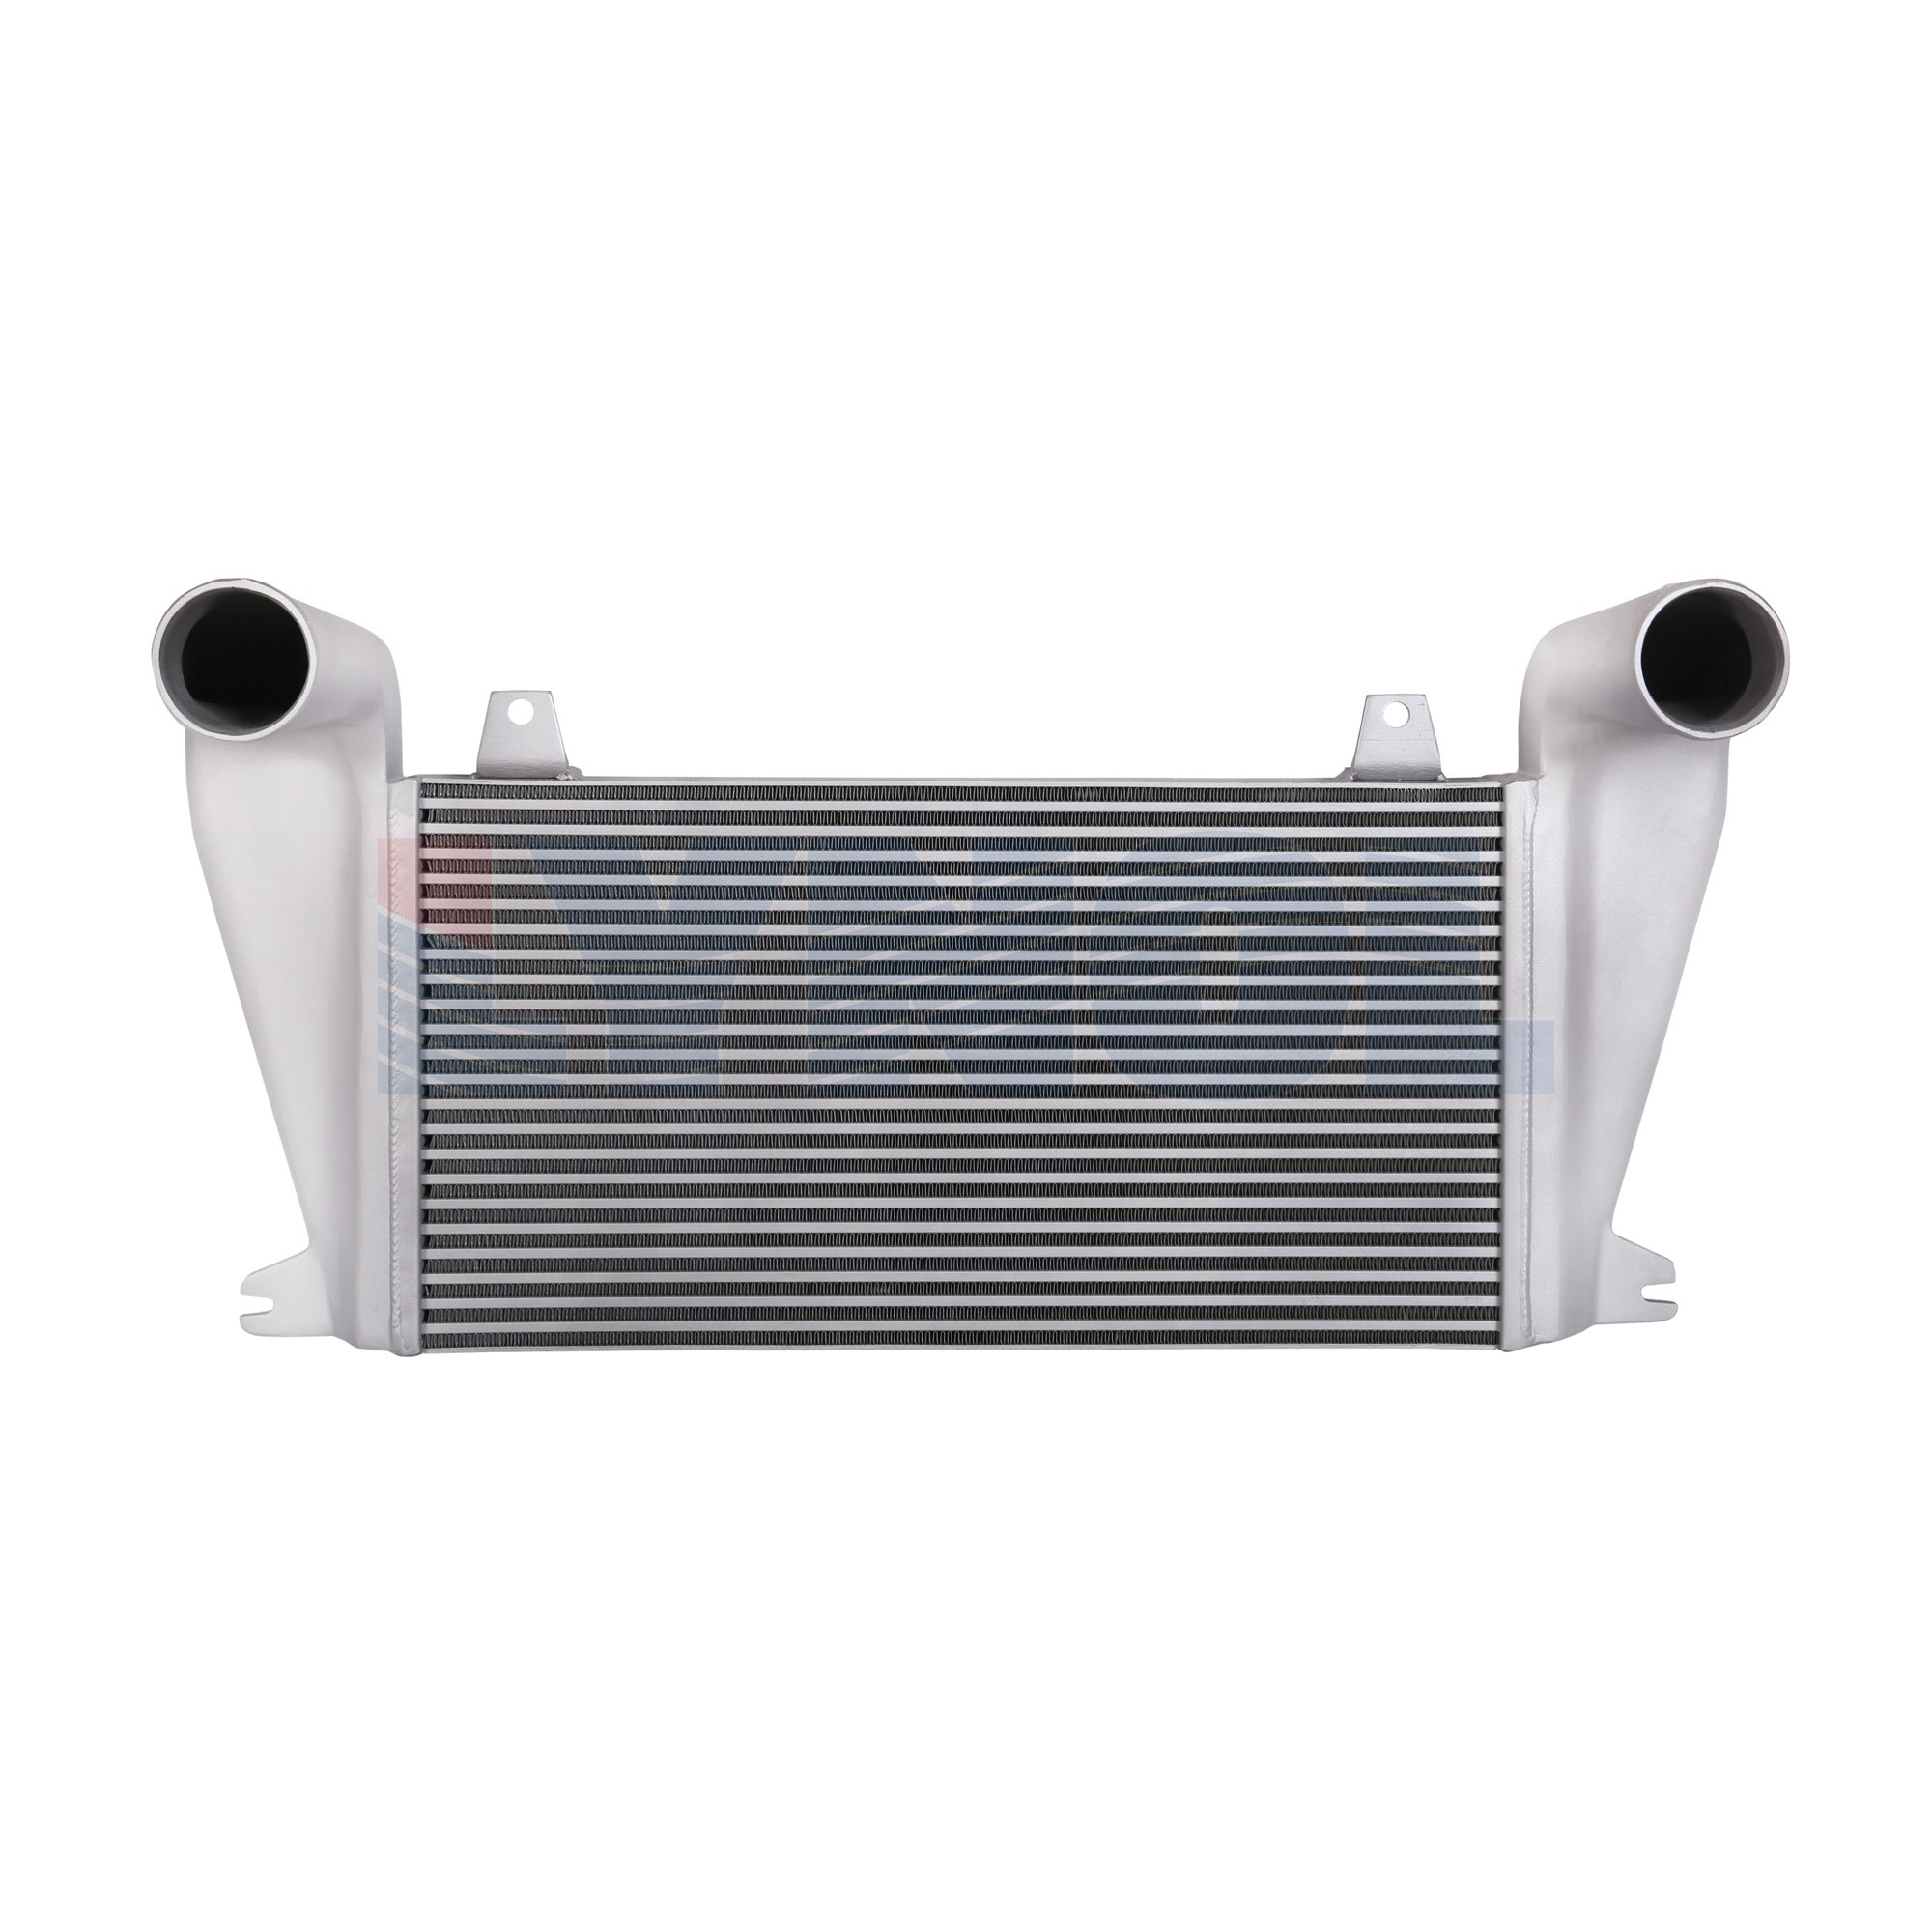 2408-010 - International / Navistar Charge Air Cooler